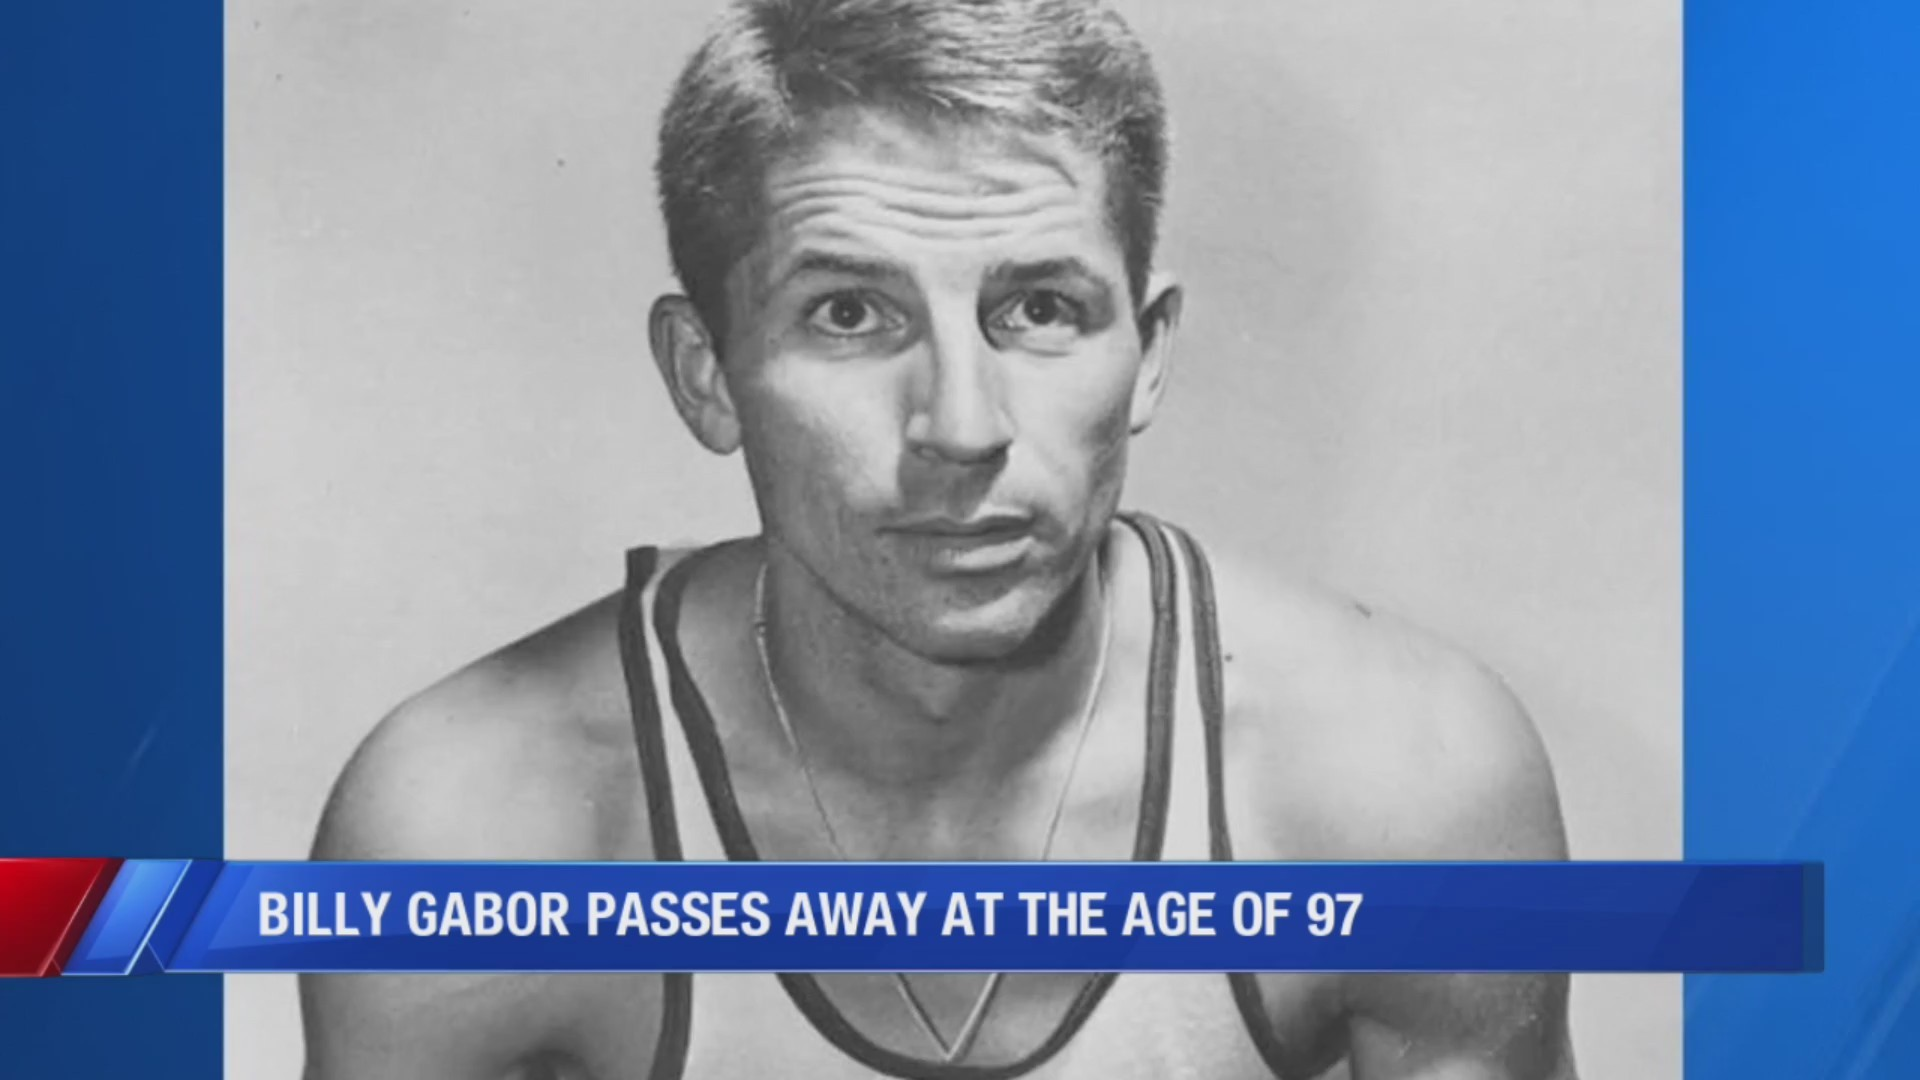 Billy_Gabor_passes_away_at_age_of_97_0_20190605141514